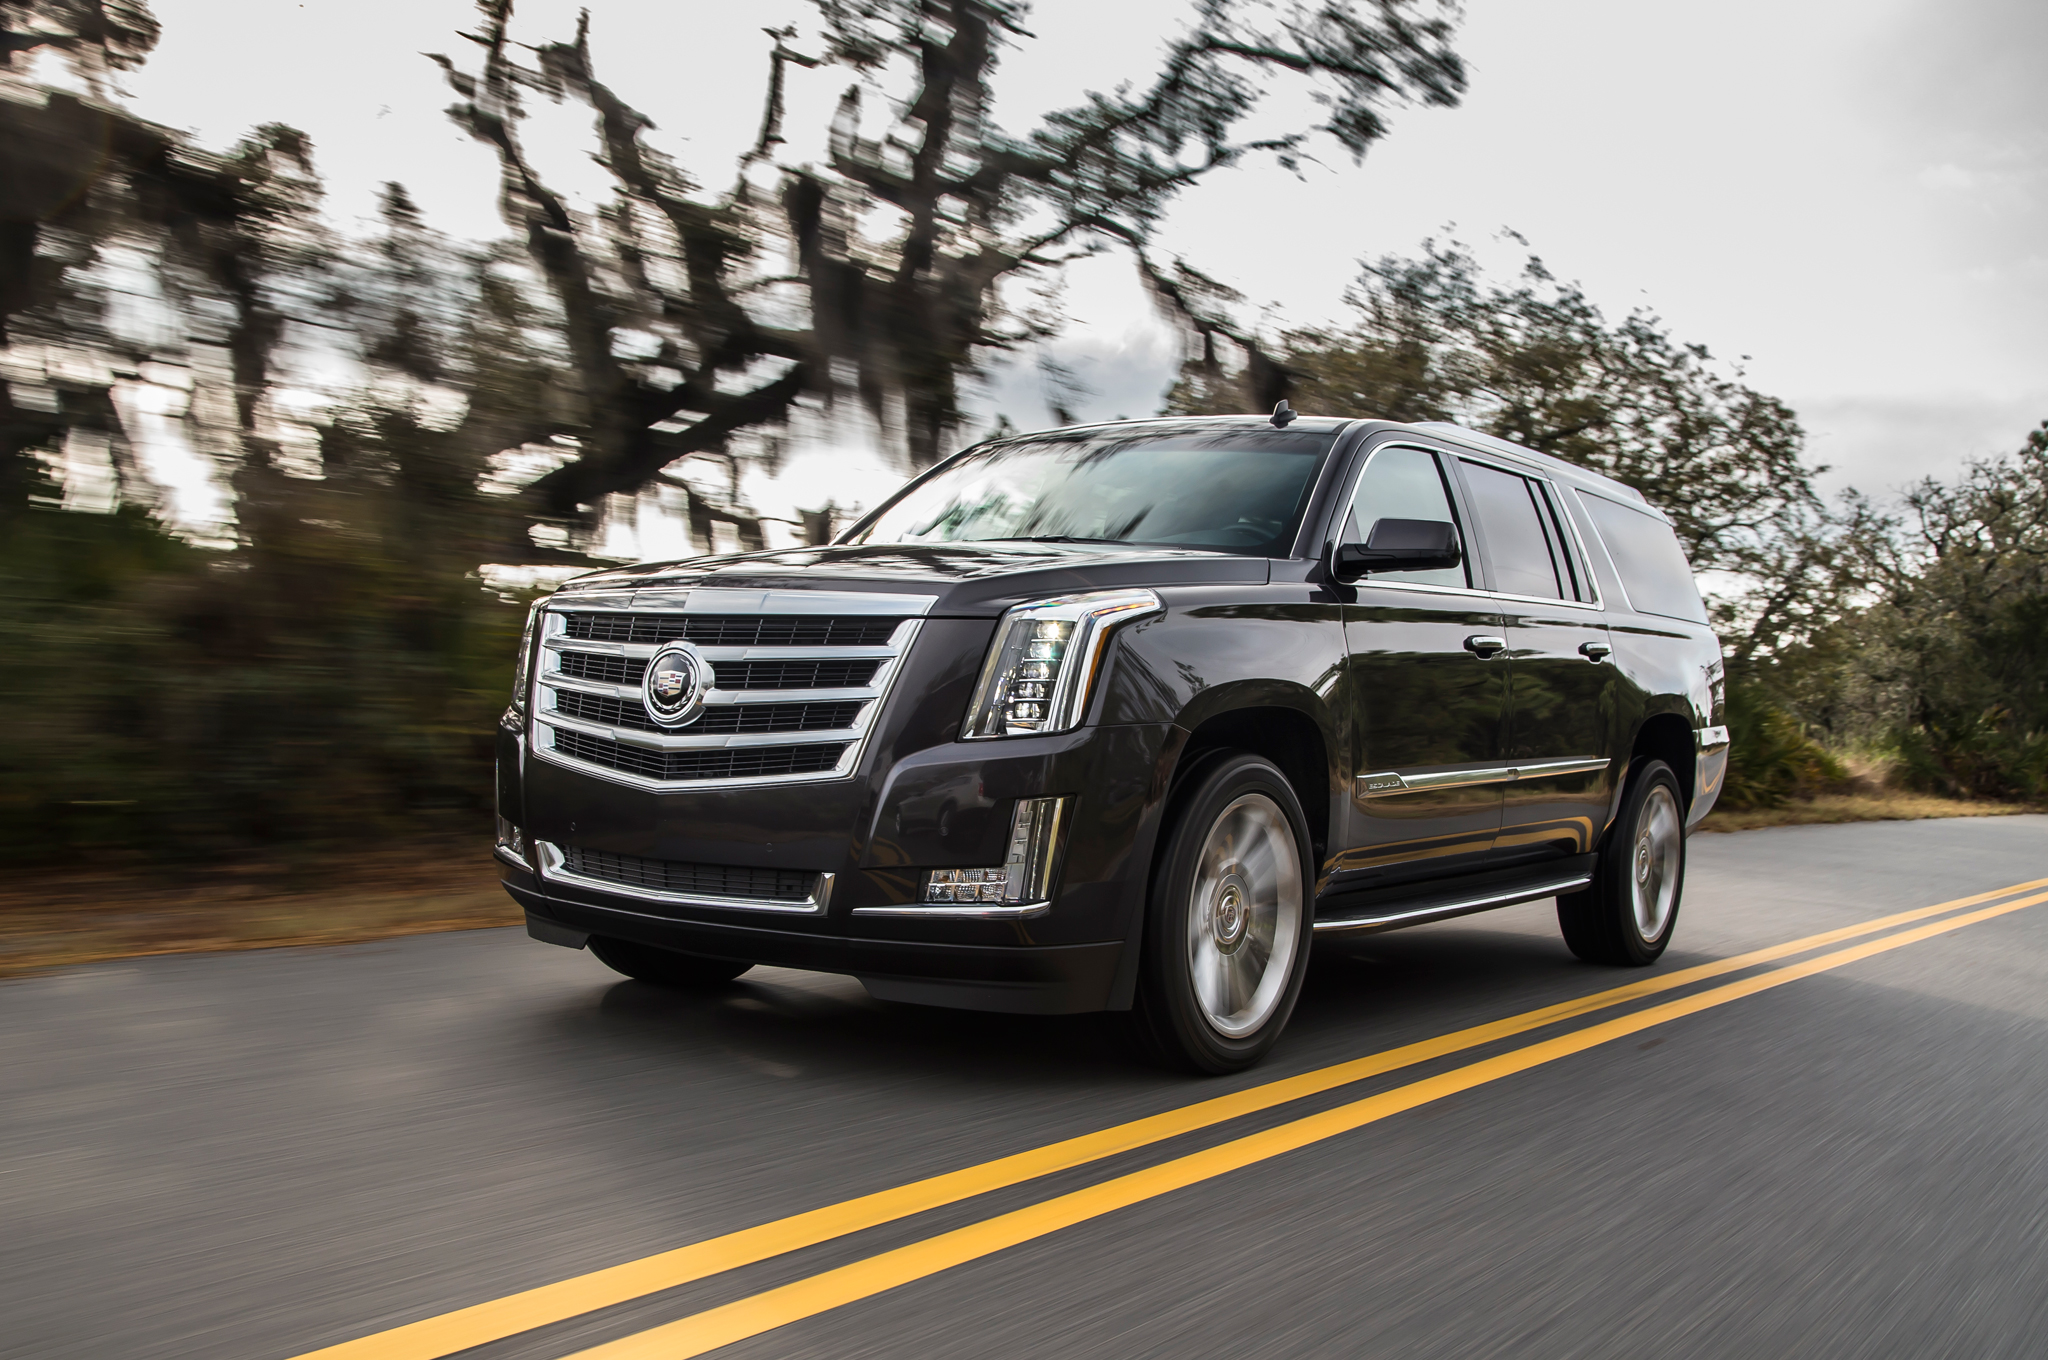 Cadillac 2015 escalade opening a new generation of luxury SUVs #7